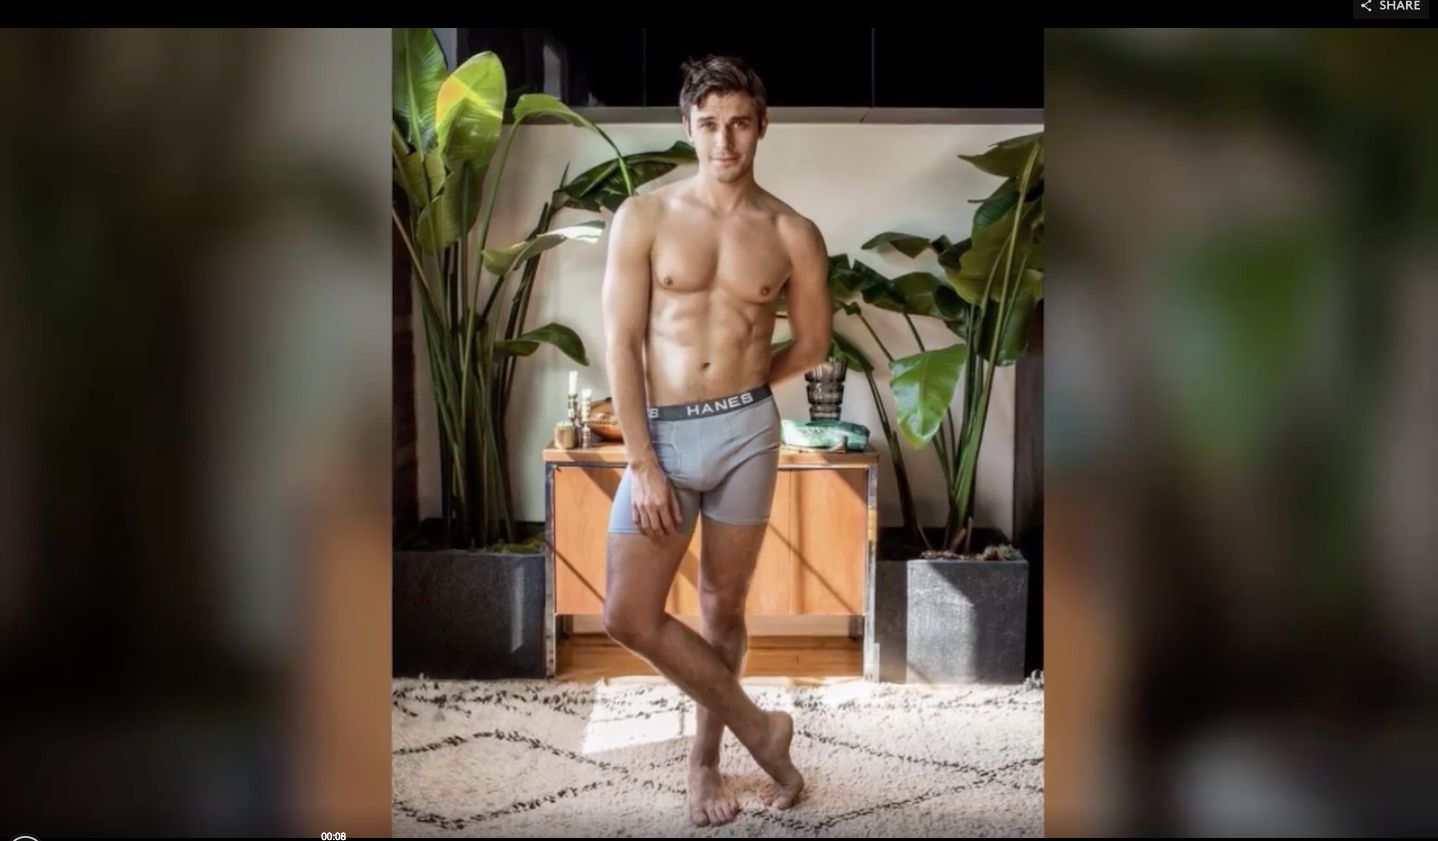 'Queer Eye' Star Antoni Porowski Strips To His Underwear For Hanes Campaign